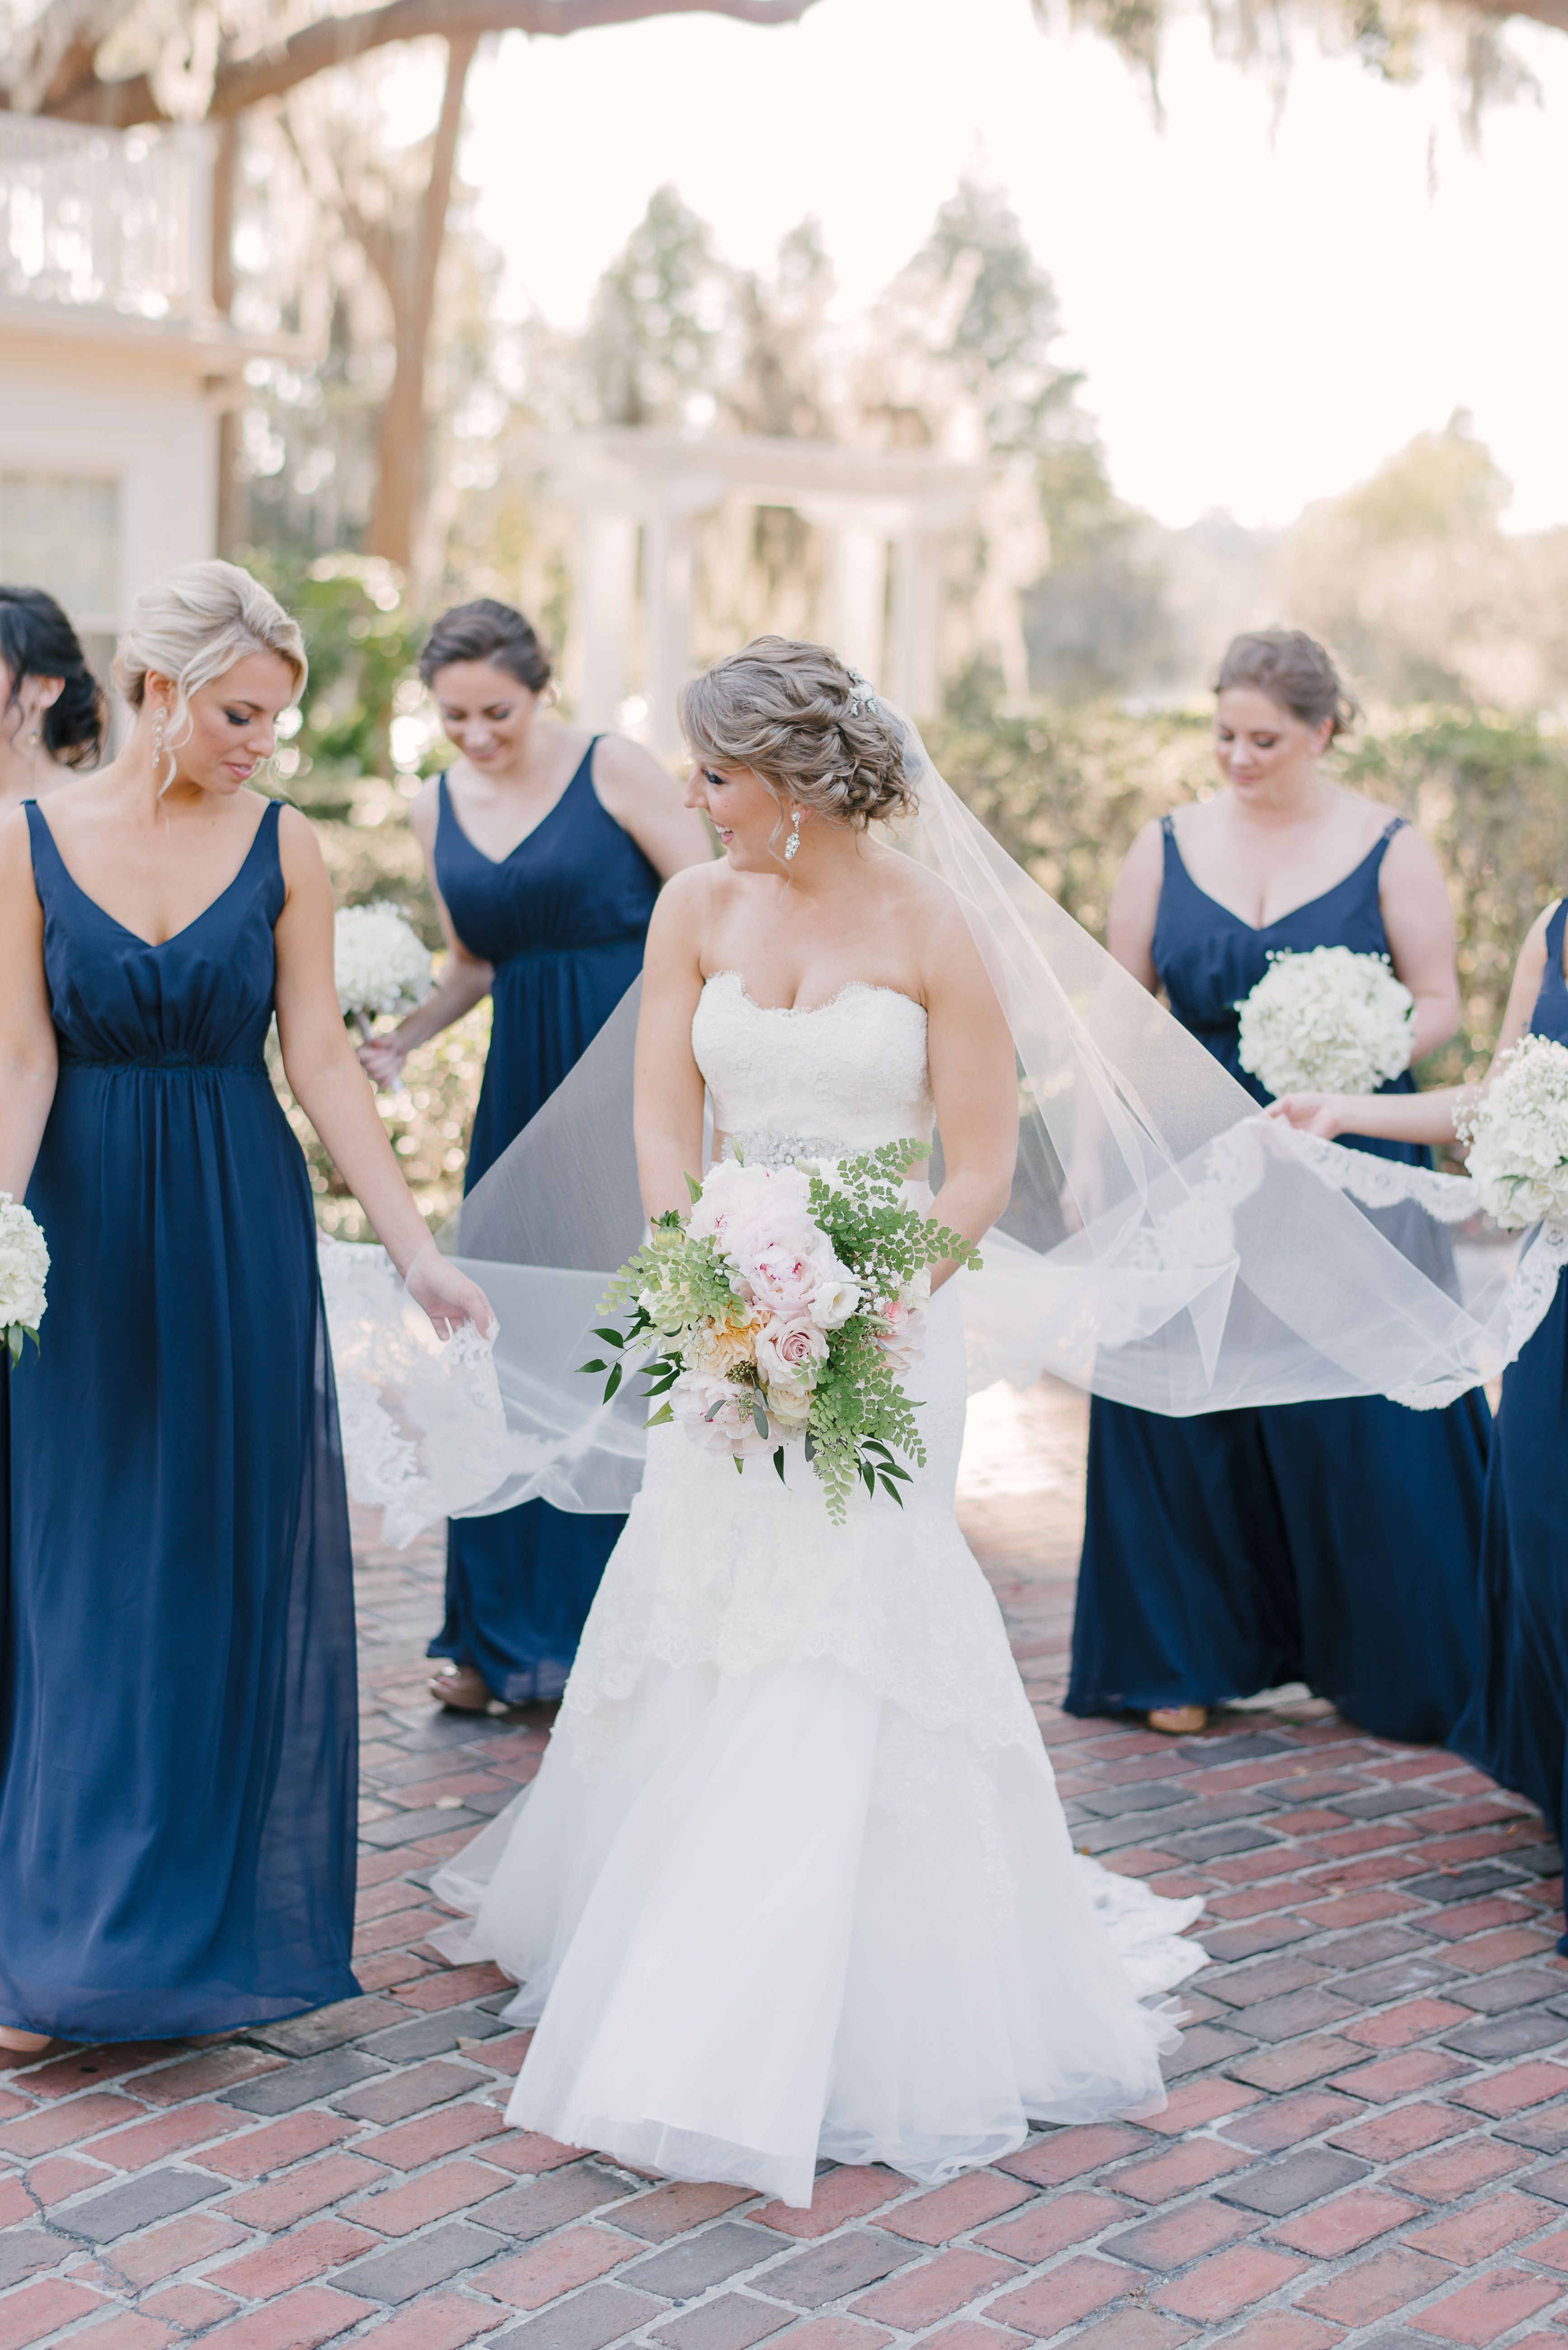 Real Bride in Bliss Monique Lhuillier Wedding Dress from